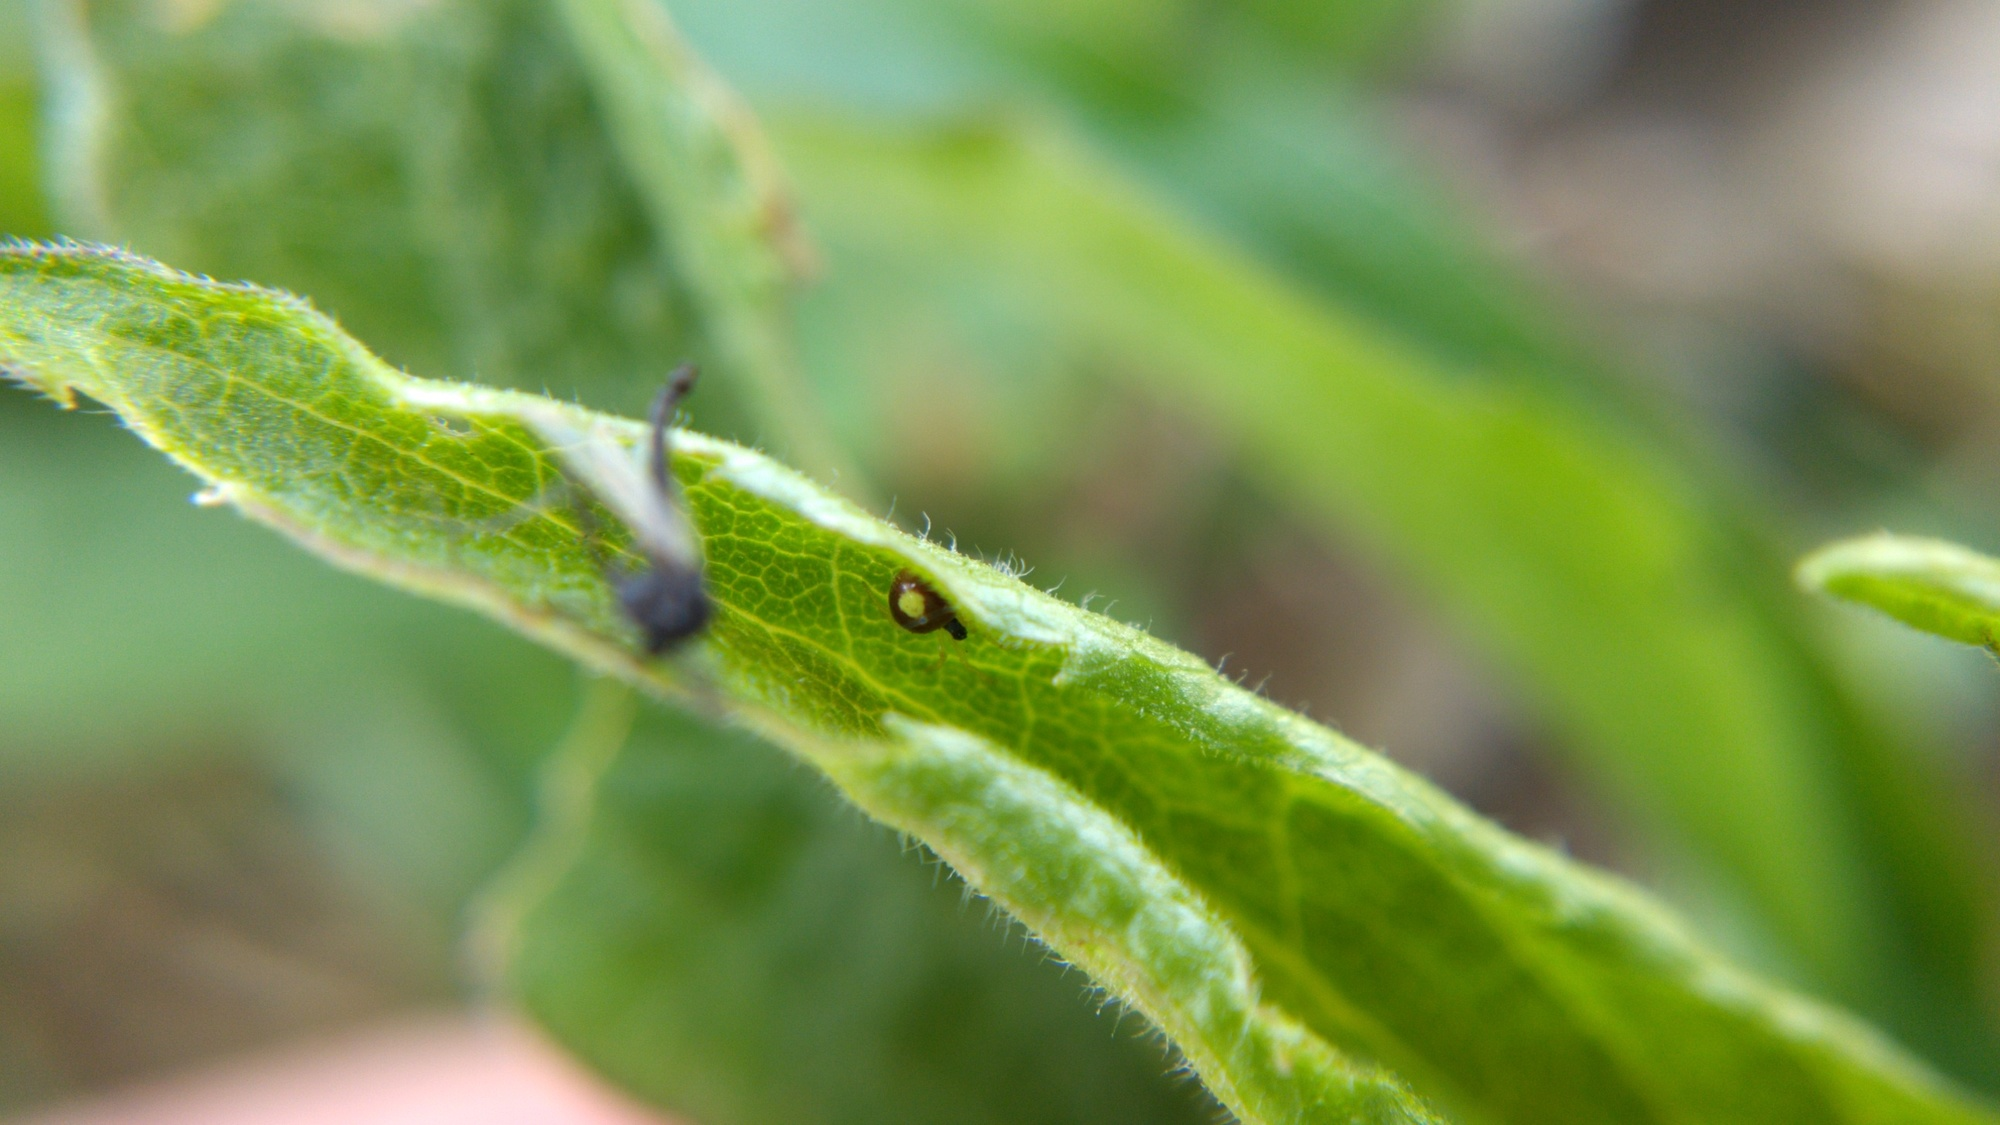 Theridula glimpsed in a curled-up goldenrod leaf